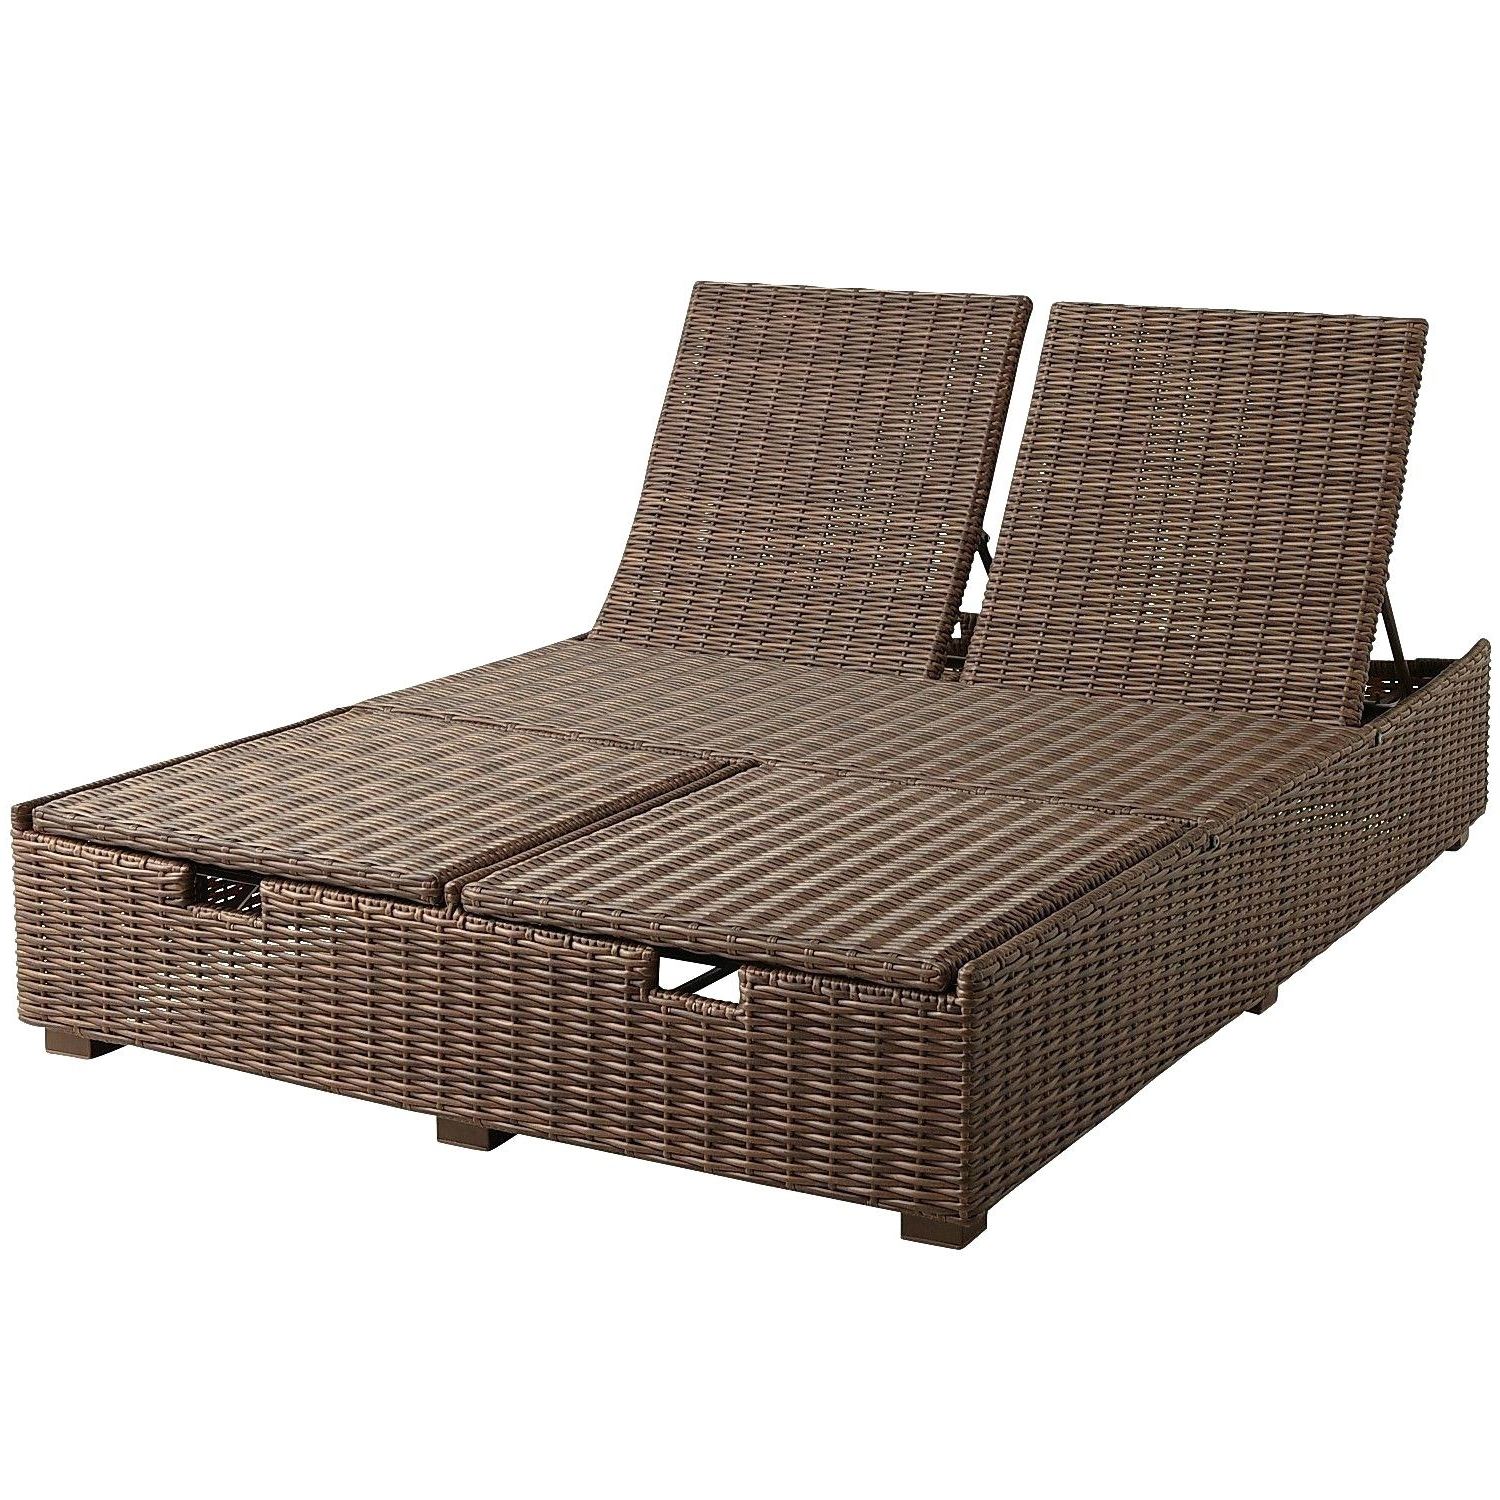 double outdoor oversized wide awesome chairs patio chaise extra indoor lounge chair of